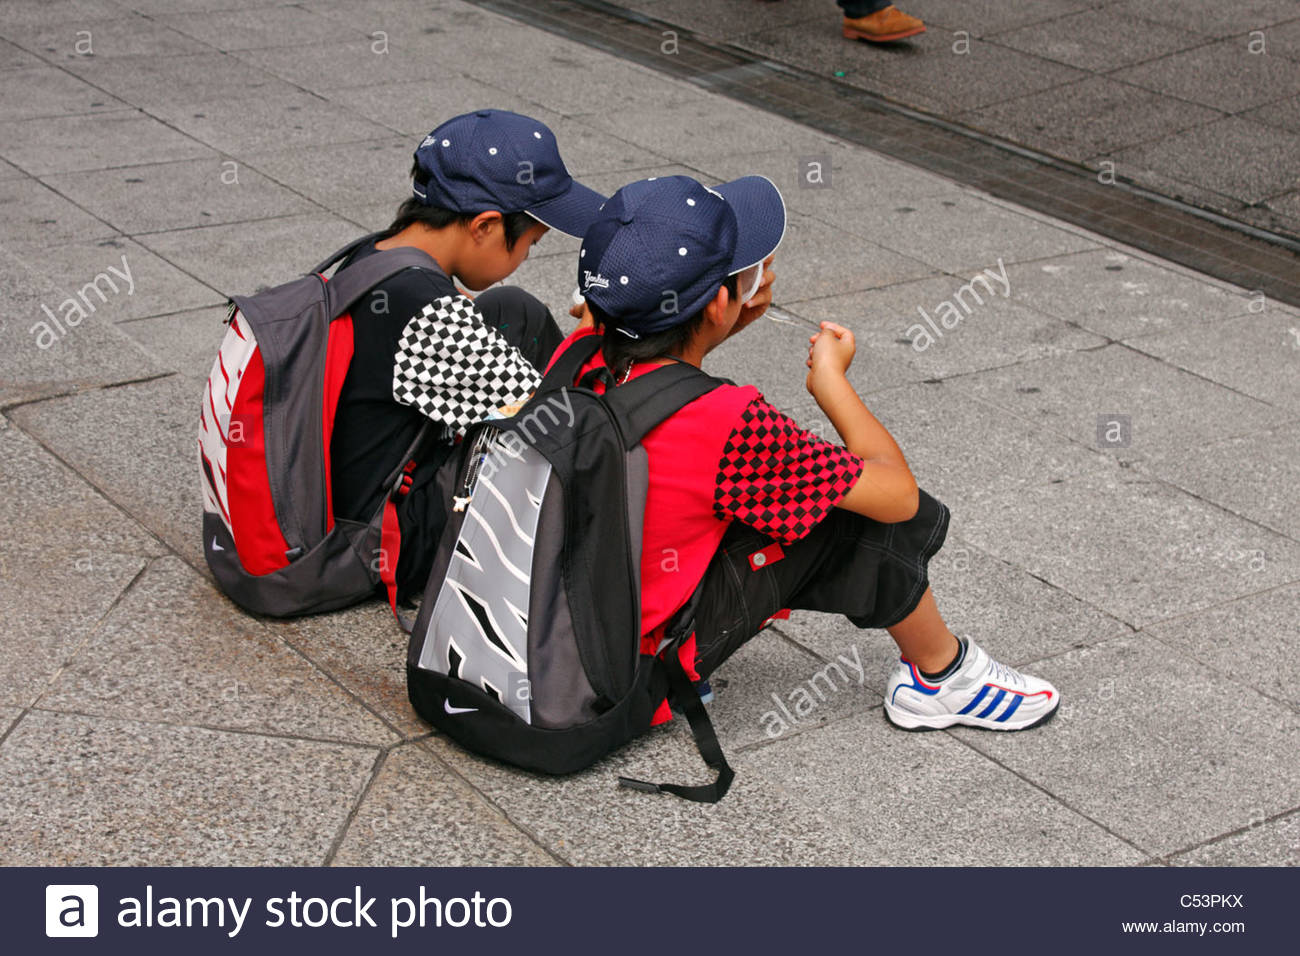 Two young boys in matching outfits, eating ice-cream, Asakusa, Tokyo, Japan - Stock Image